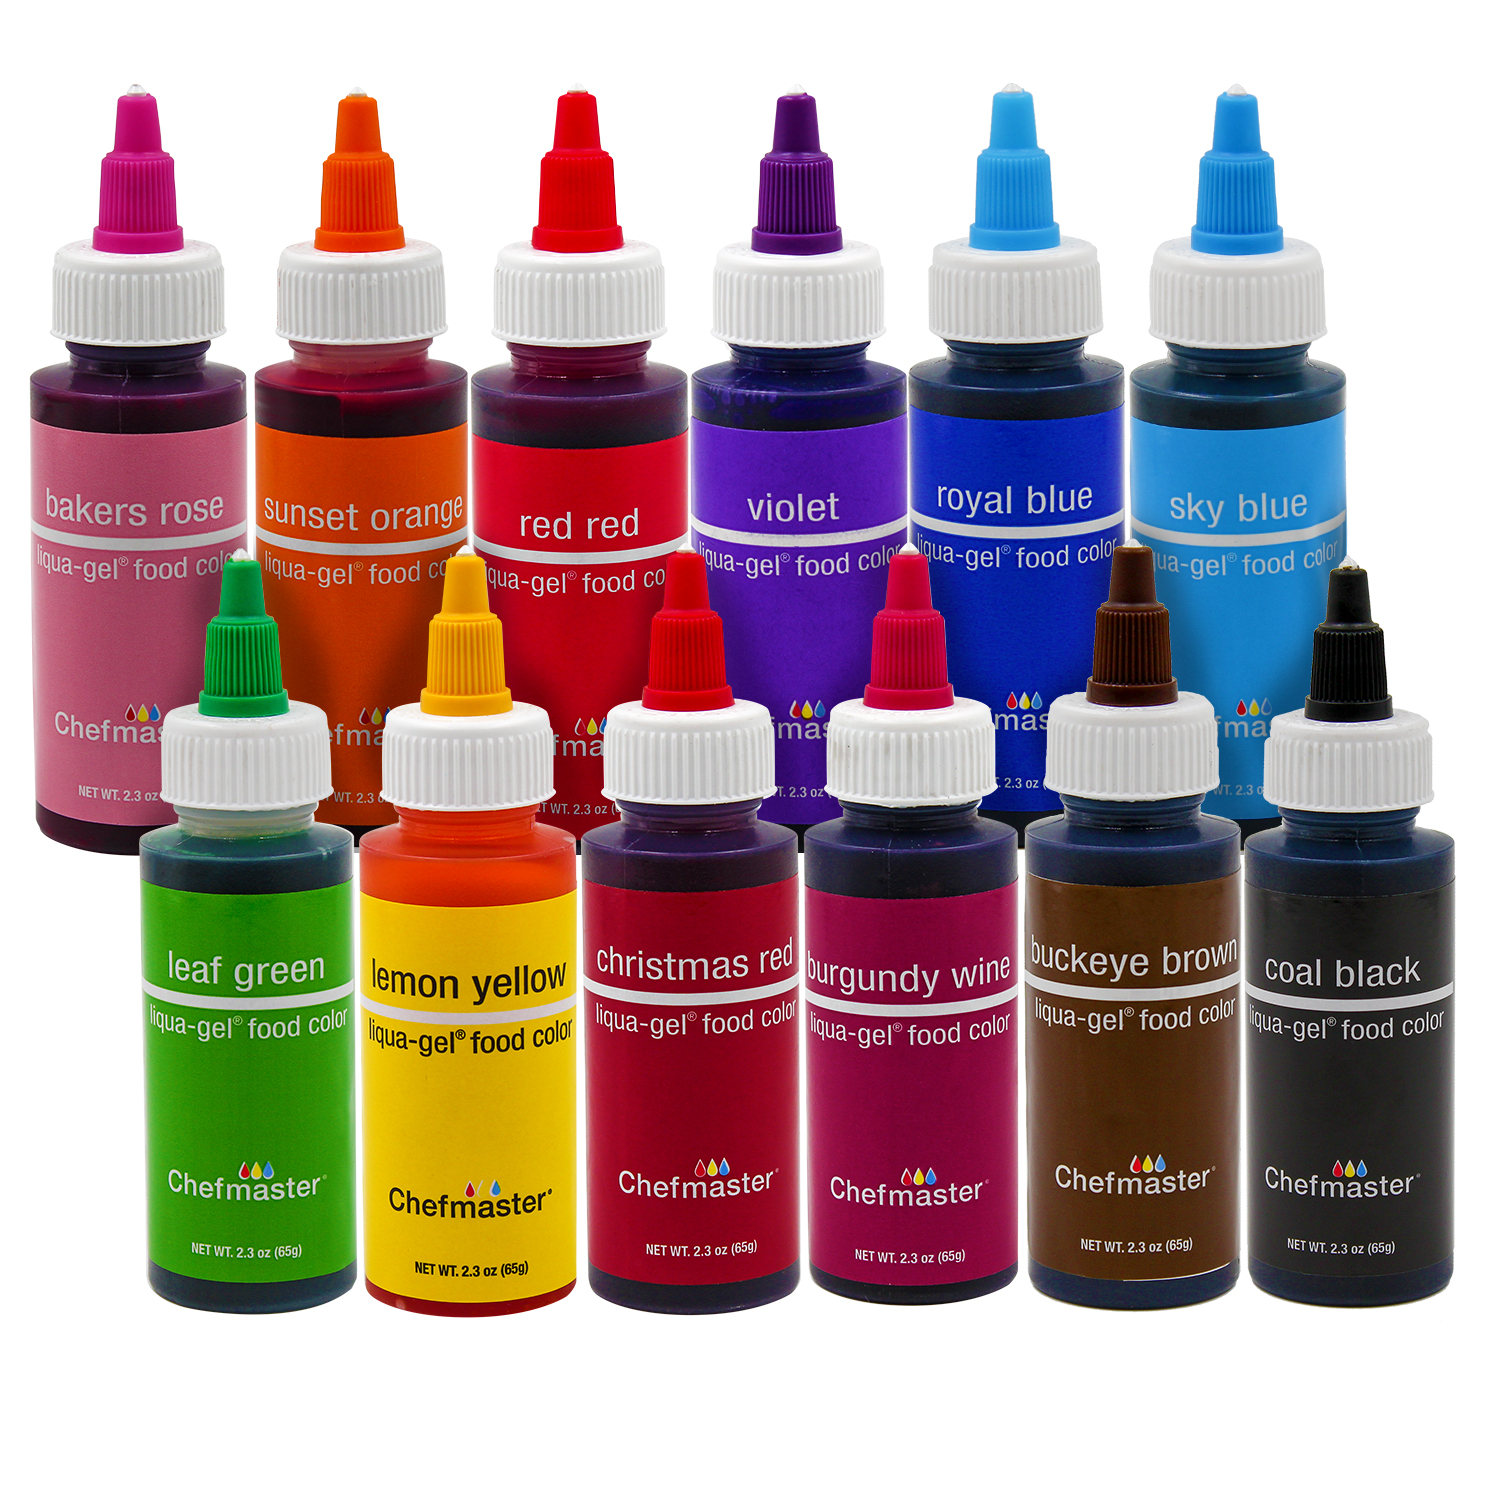 Details about Chefmaster by US Cake Supply 2.3-Ounce Liqua-Gel Cake Food  Coloring Variety Pack